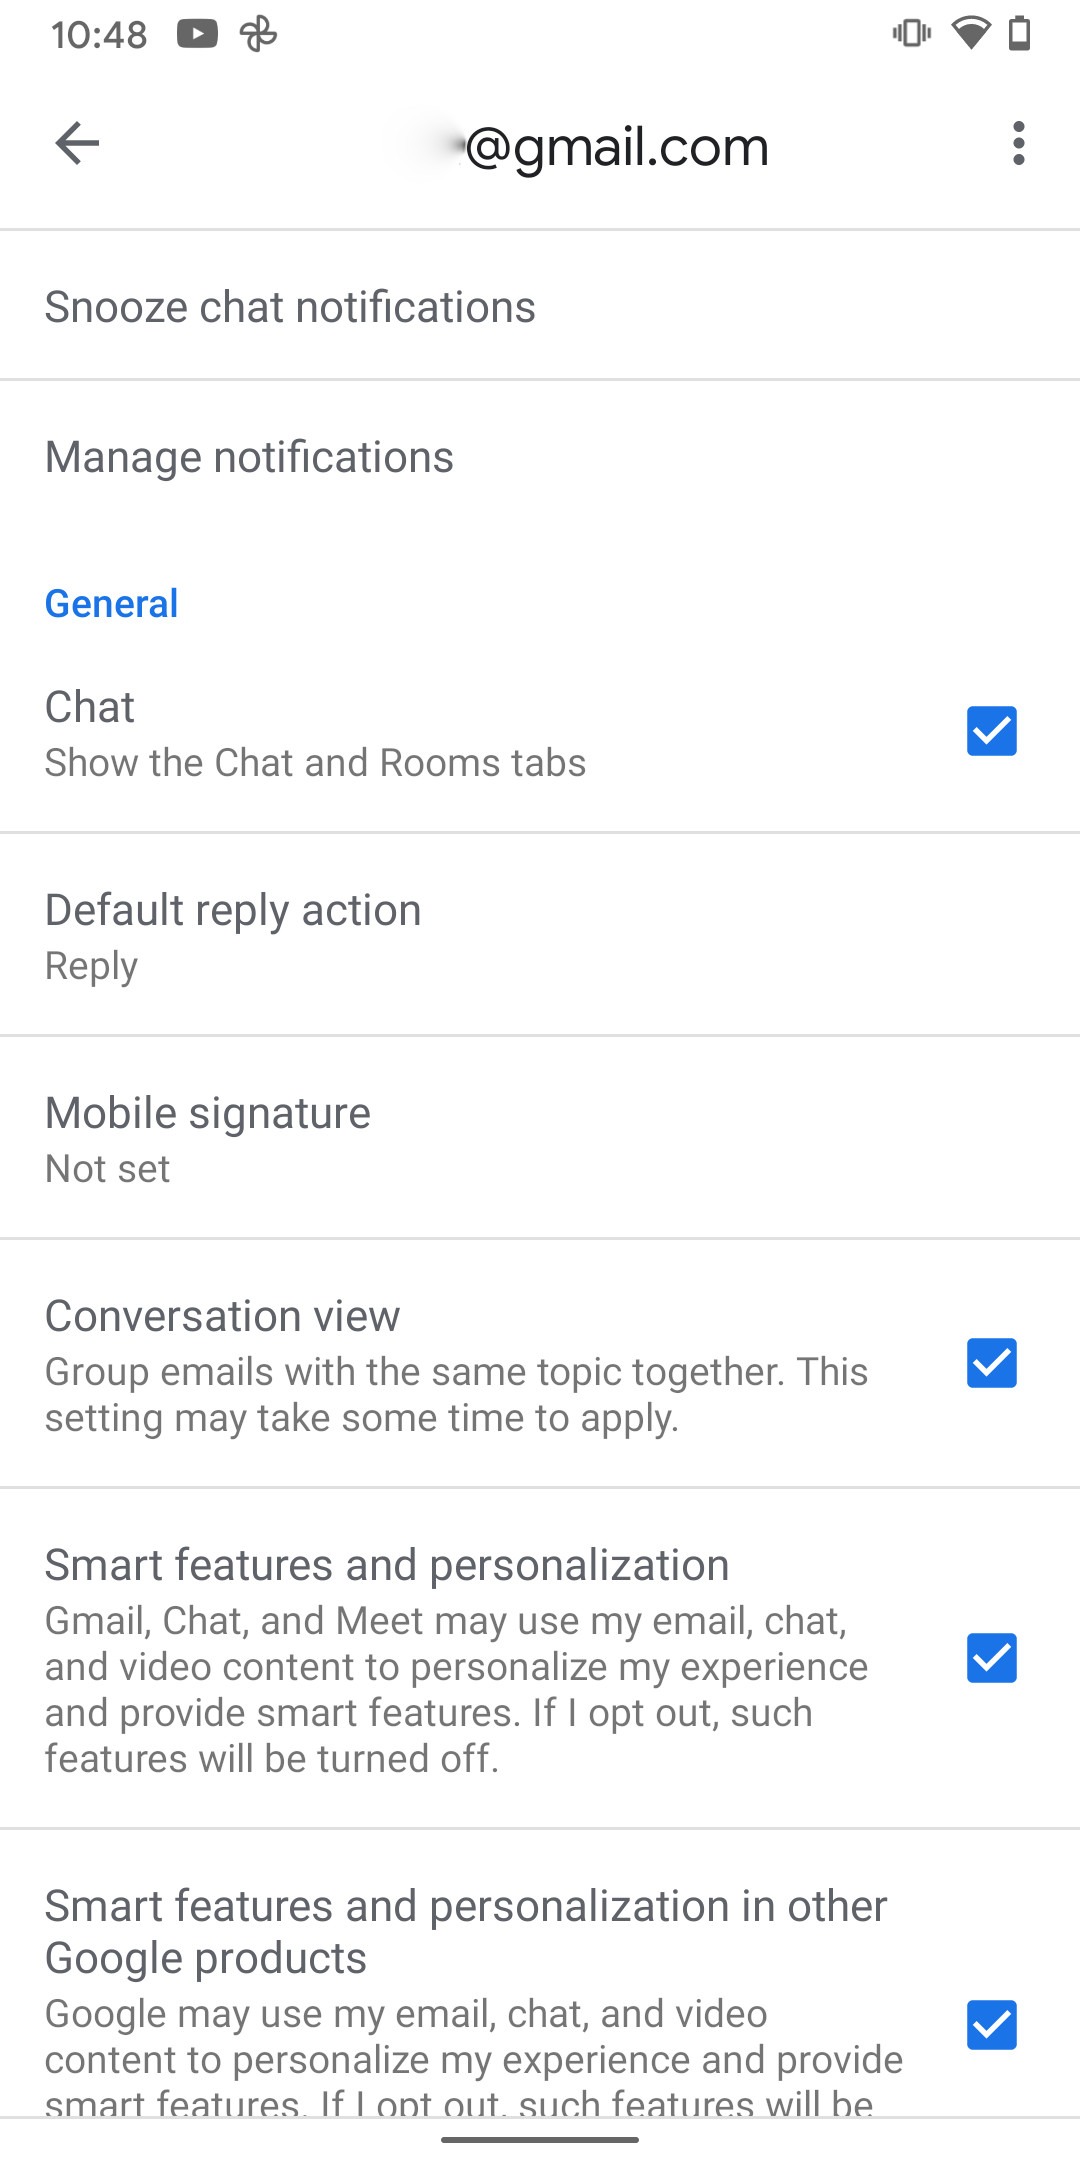 You can activate Chat in the General section of Settings.